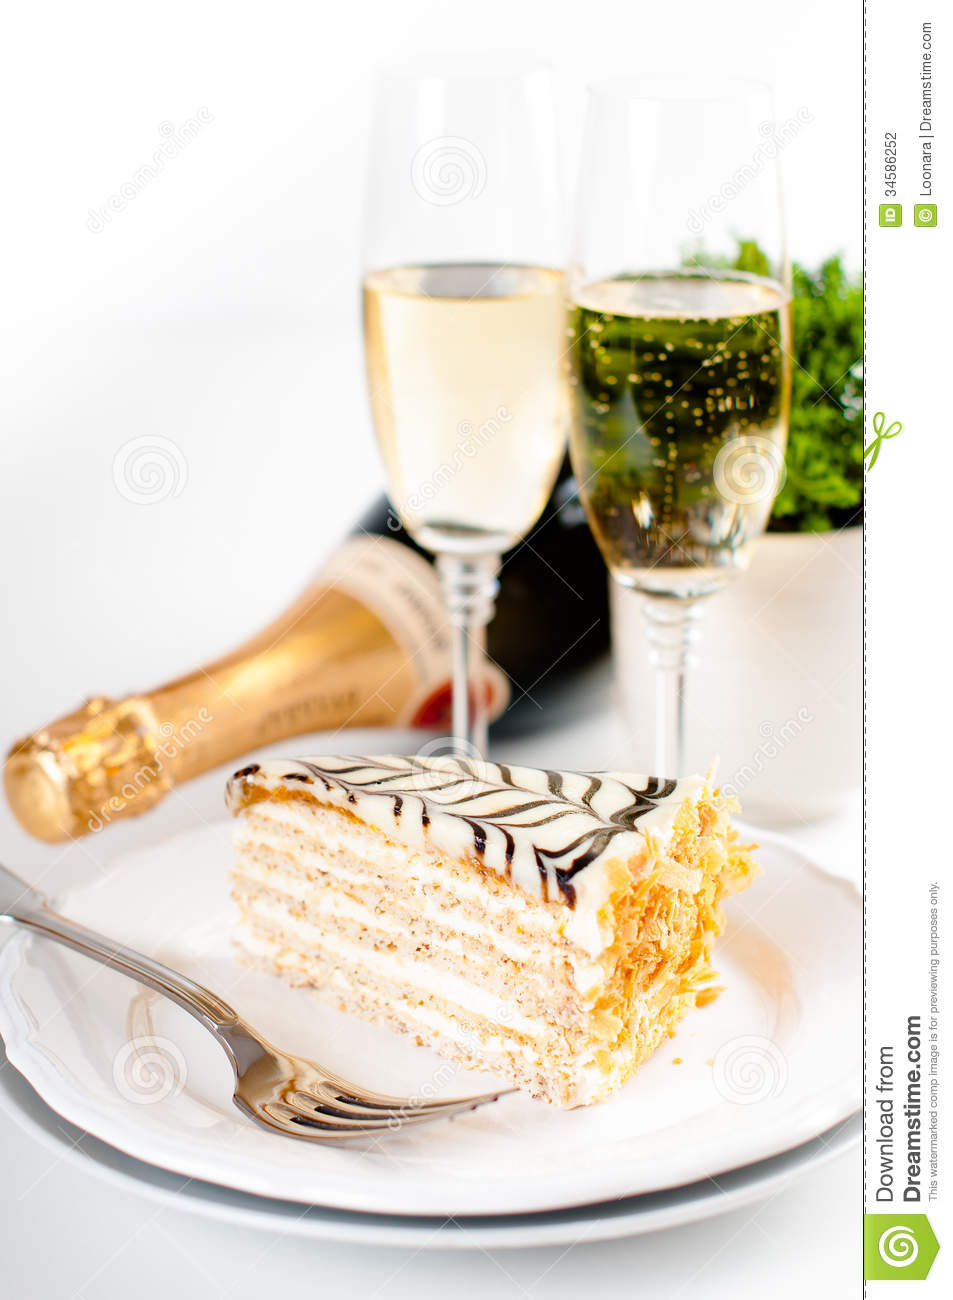 Champagne In Glasses And A Dessert Stock Photo Image